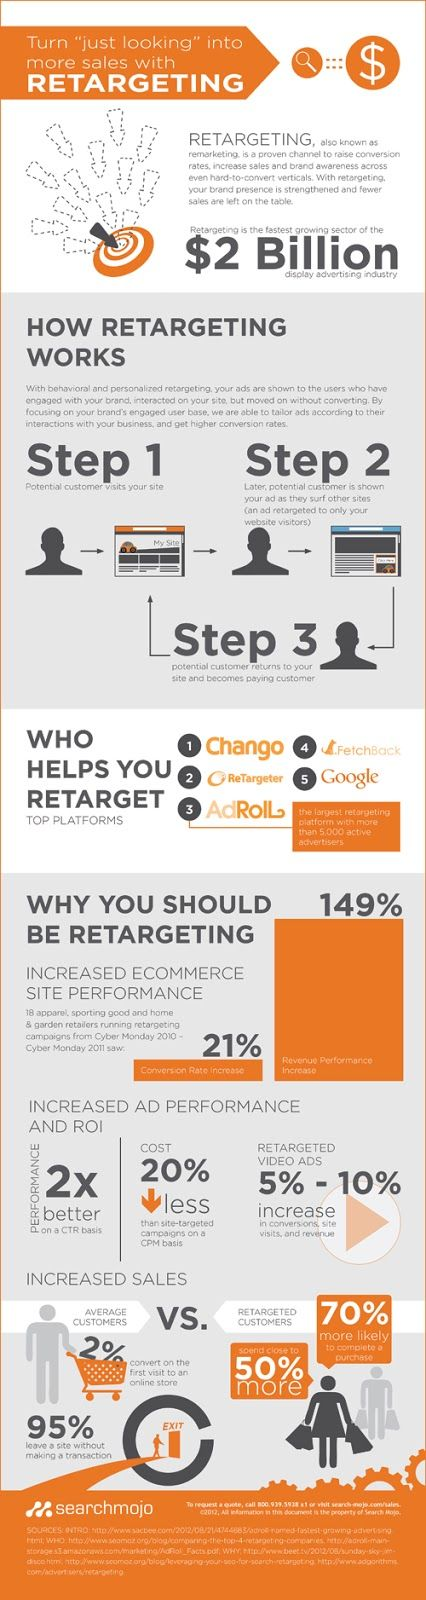 Retargeting_Infographic.jpg (426×1600) #marketing #email #infographic